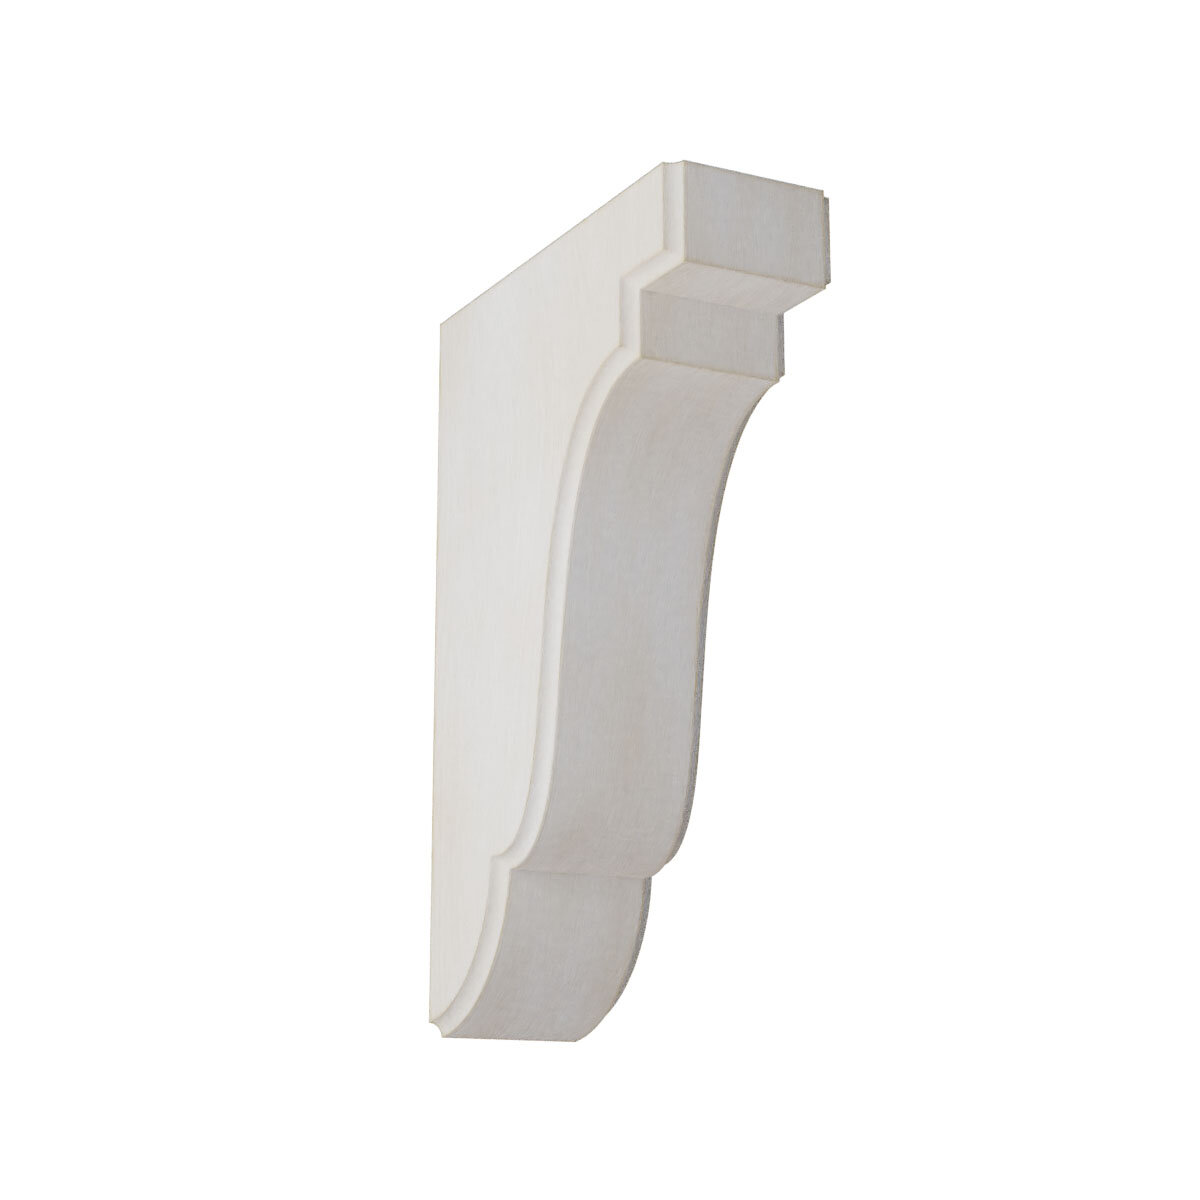 Ekena Millwork Bedford Wood Decor Bracket Wayfair